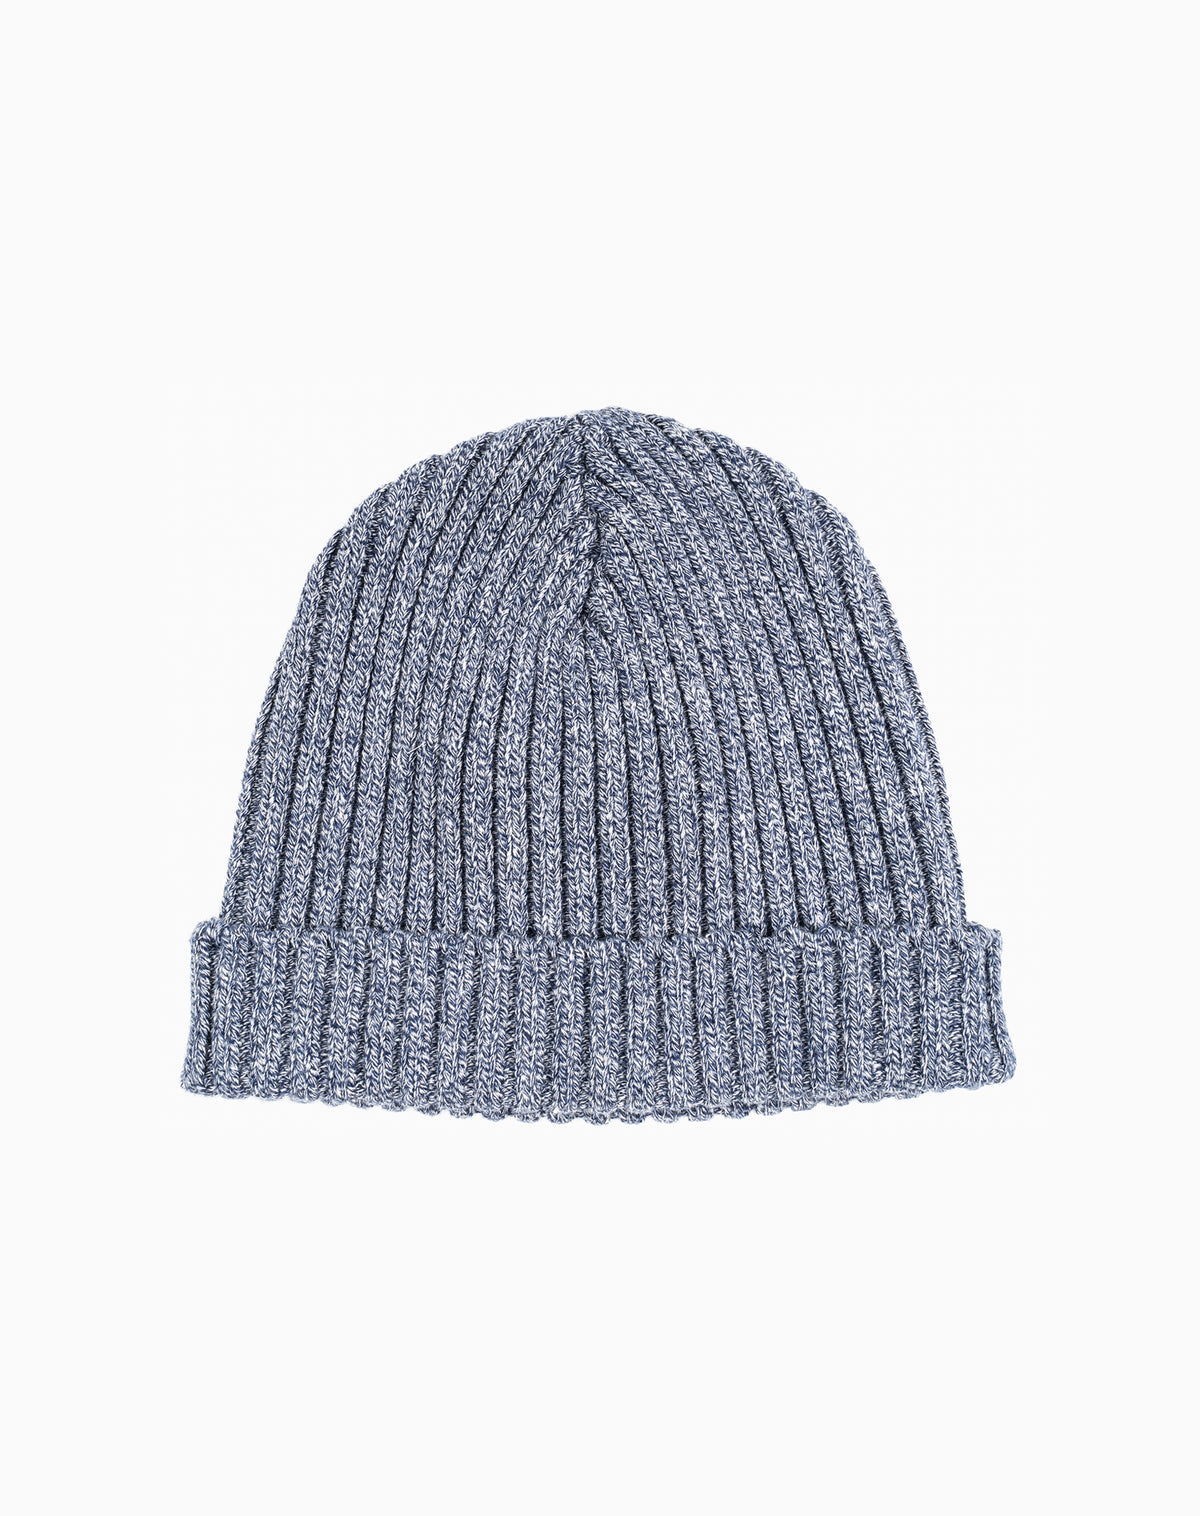 Docksider Knit Beanie in Denim Mix